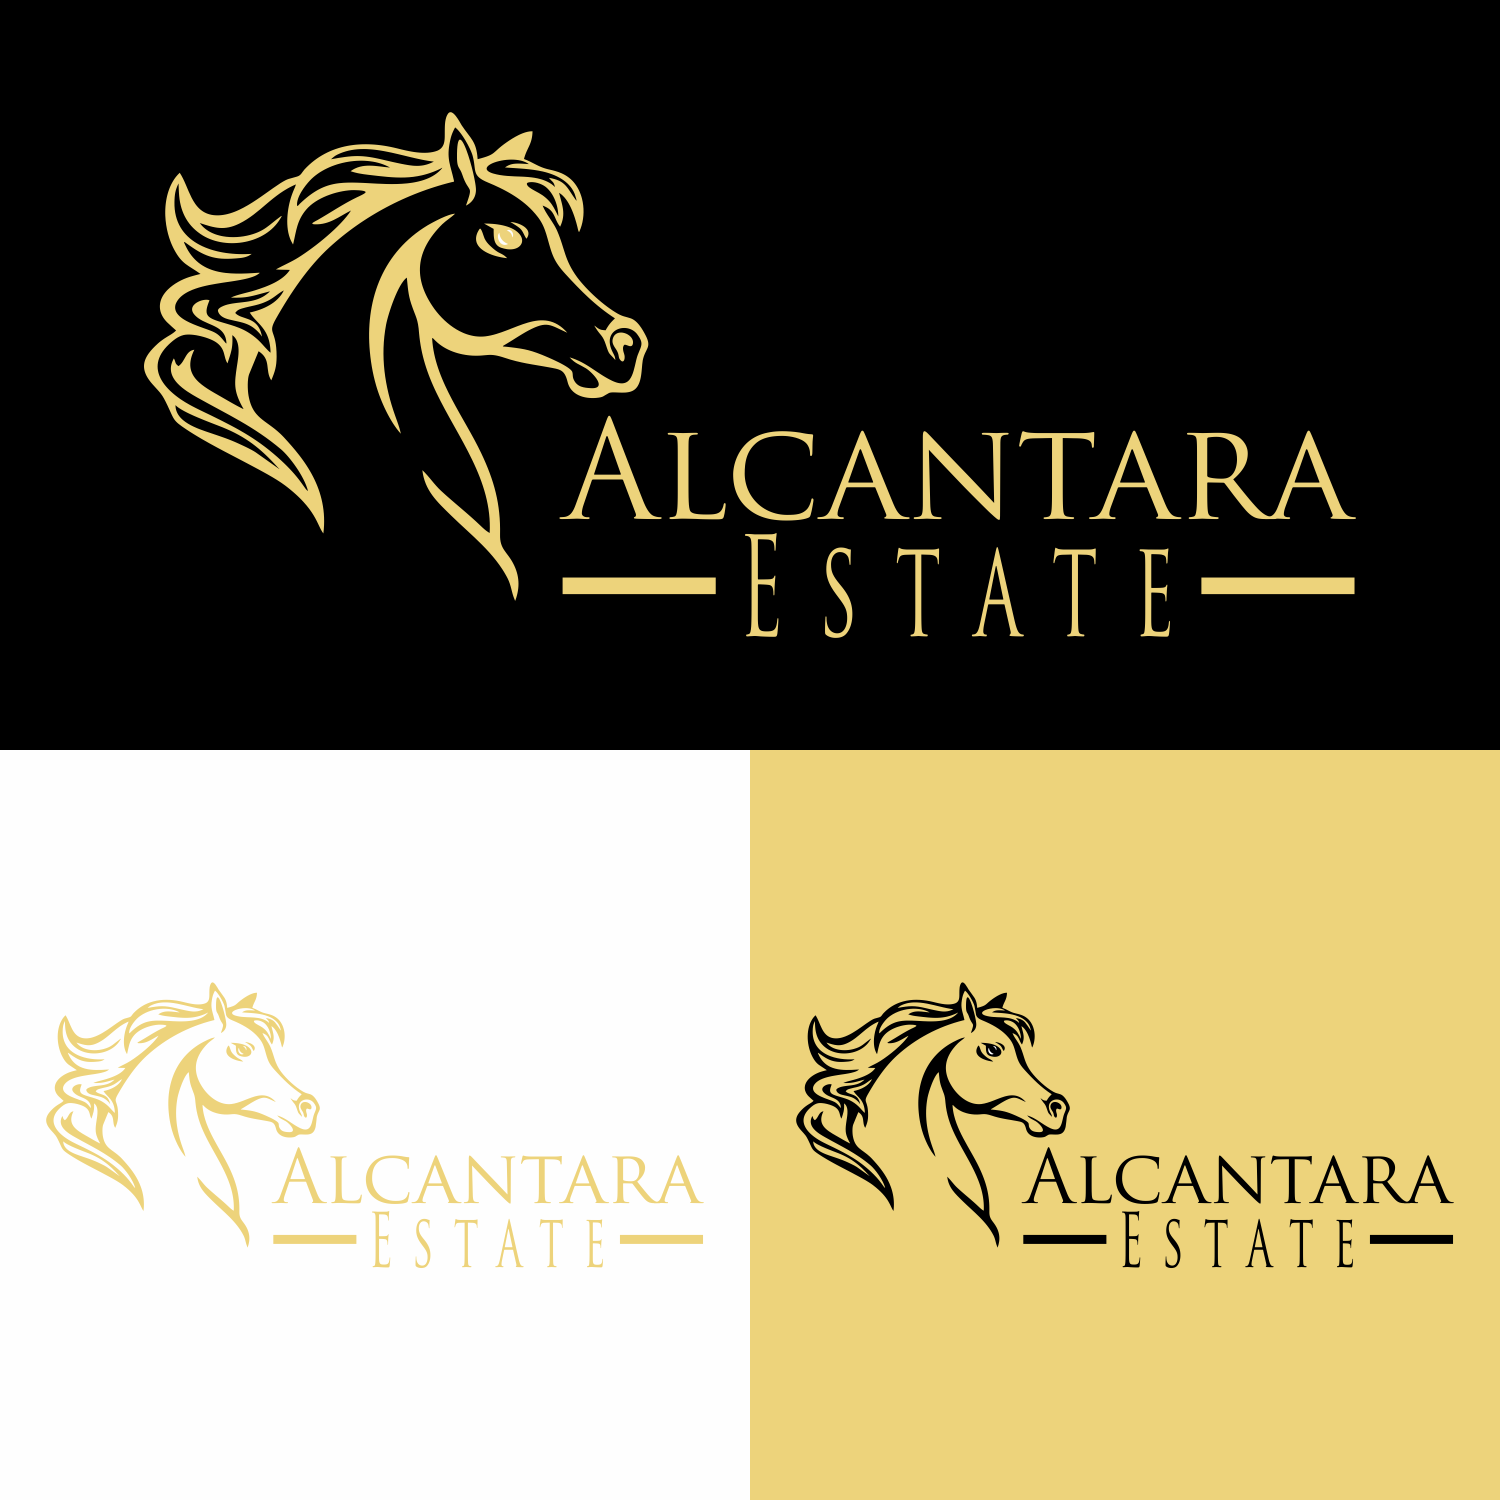 Serious Upmarket Agriculture Logo Design For Alcantara Estate Name In The Logo With Arabian Horse This Logo To Be Black And Gold By Iwan 11 Design 22761794